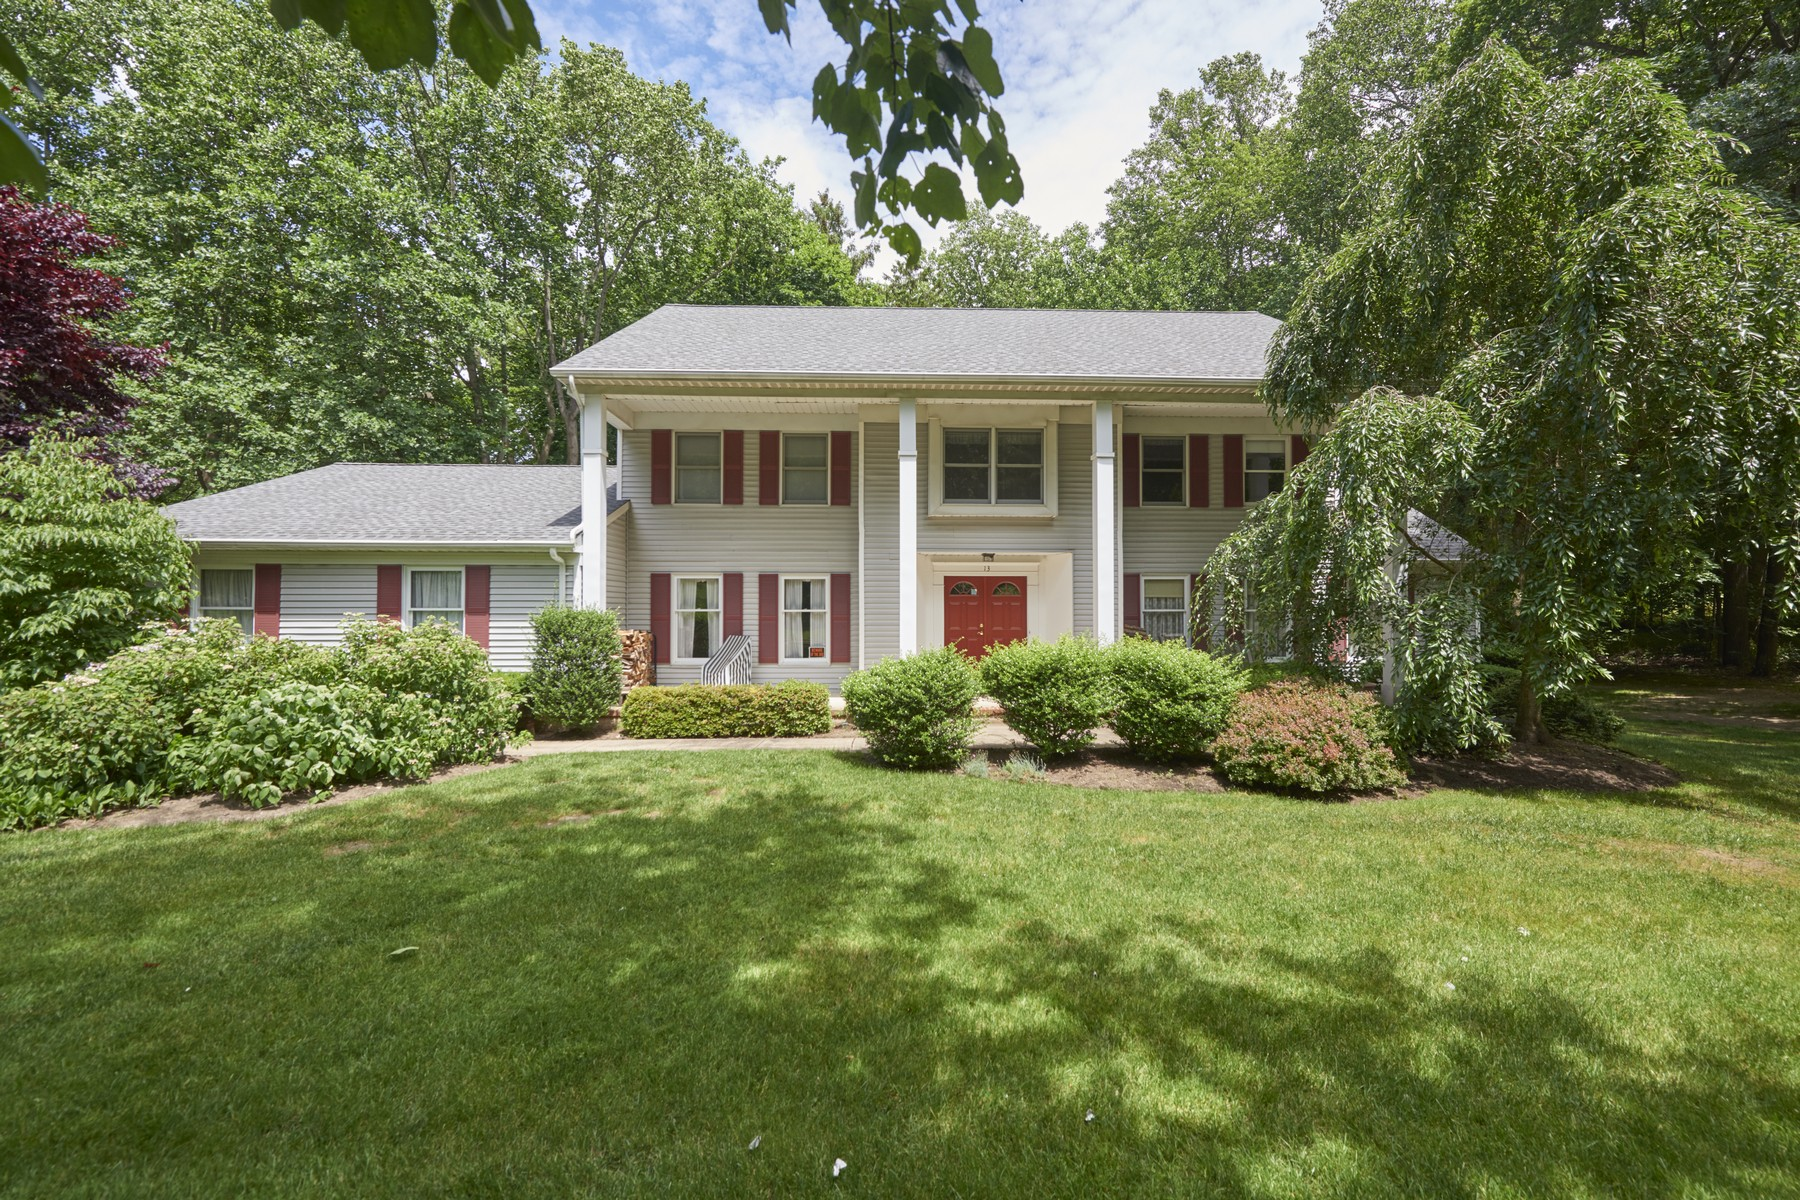 Single Family Home for Sale at 13 Constitution Dr., Middletown Middletown, New Jersey, 07748 United States